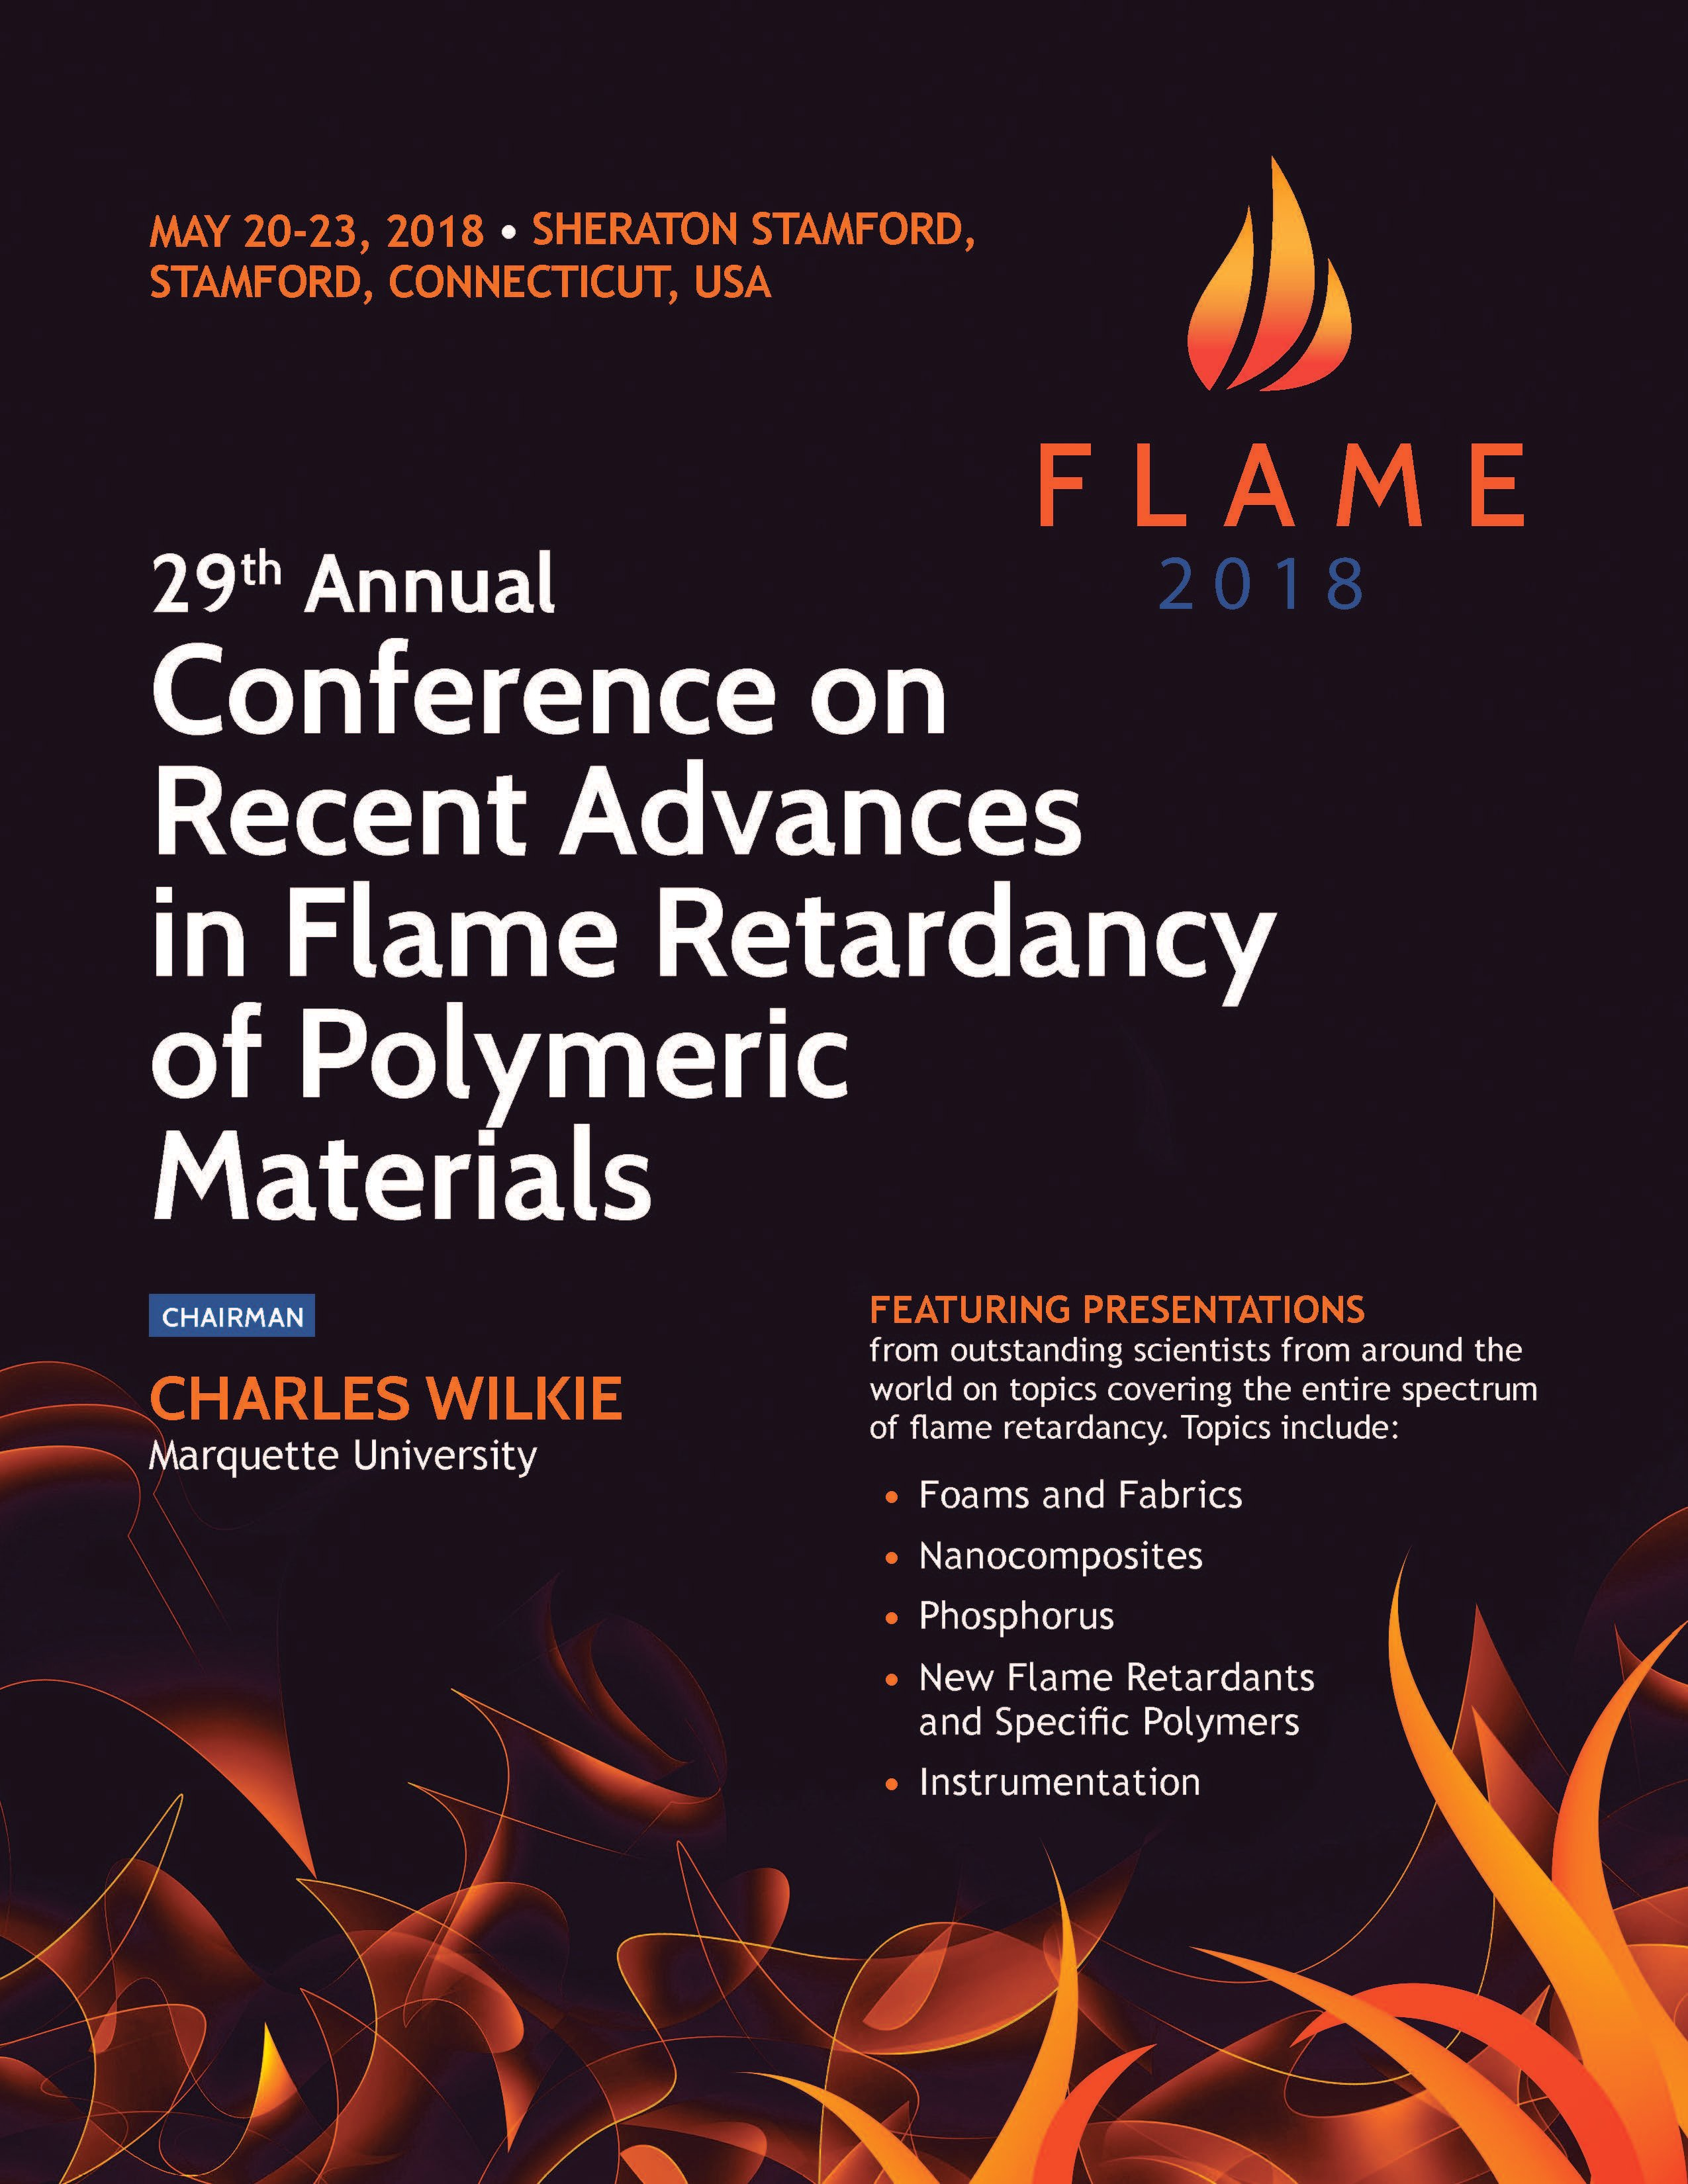 flame 2018 program_Page_01.jpg